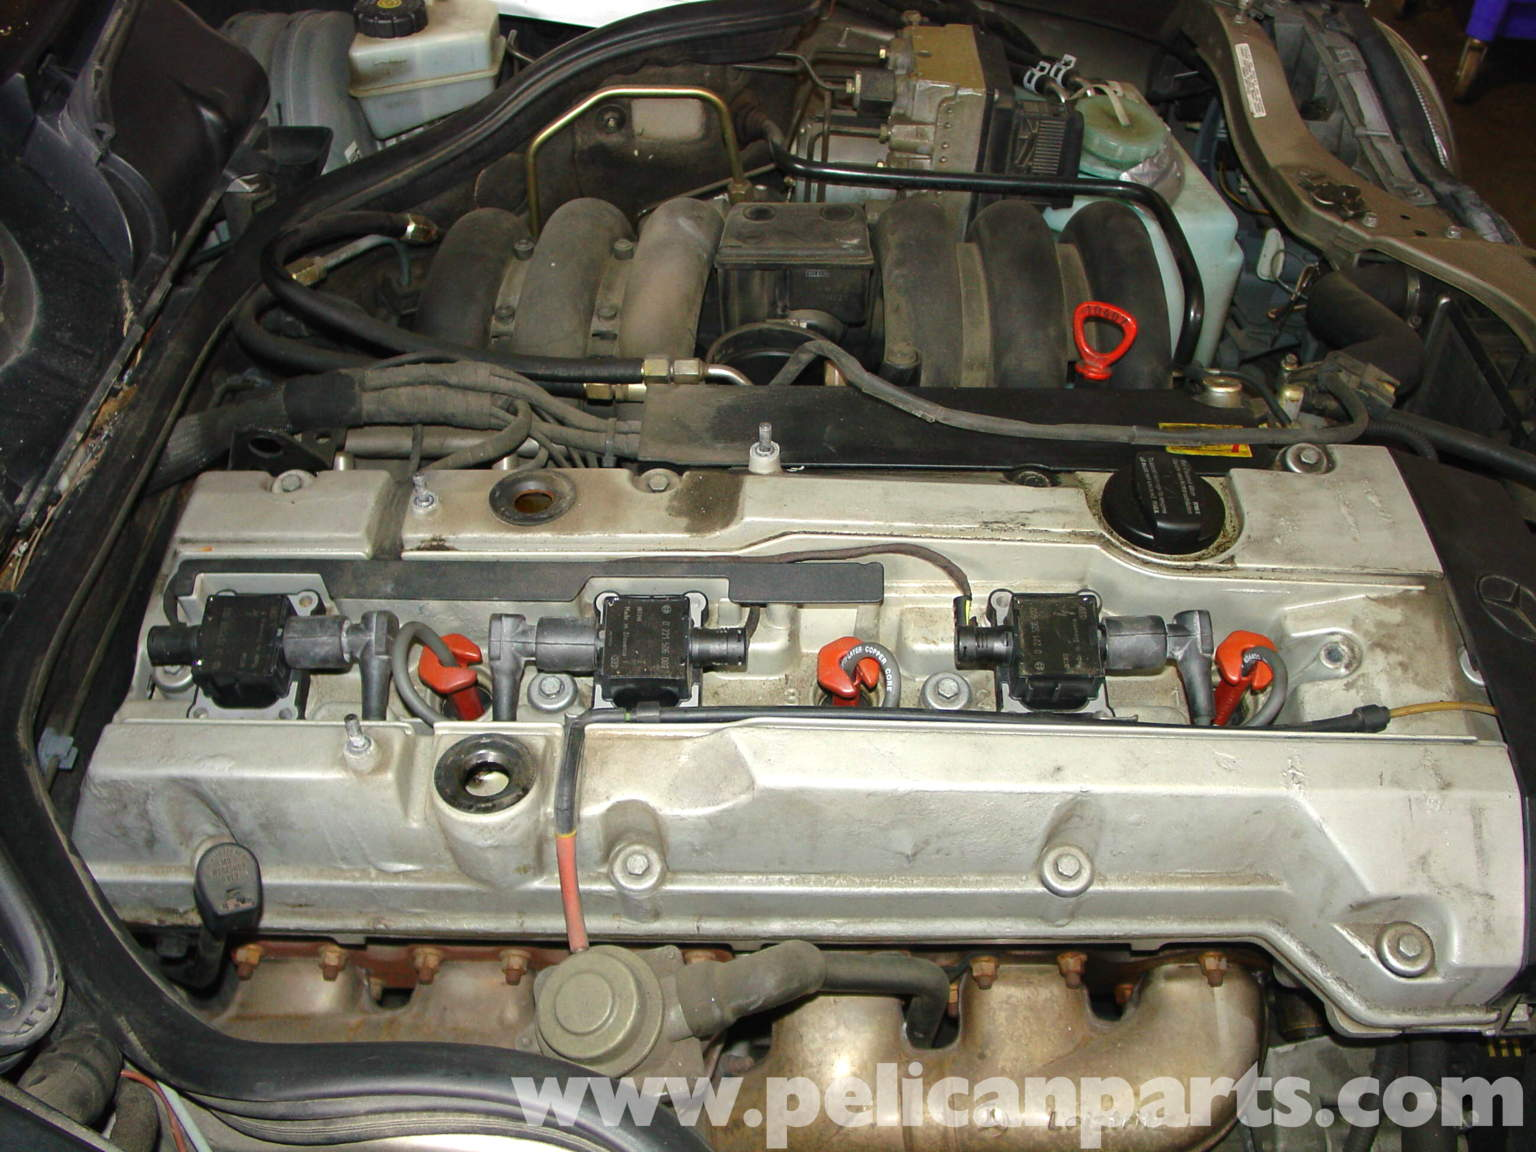 98 s320 engine problem mercedes benz forum for 1994 mercedes benz c280 problems